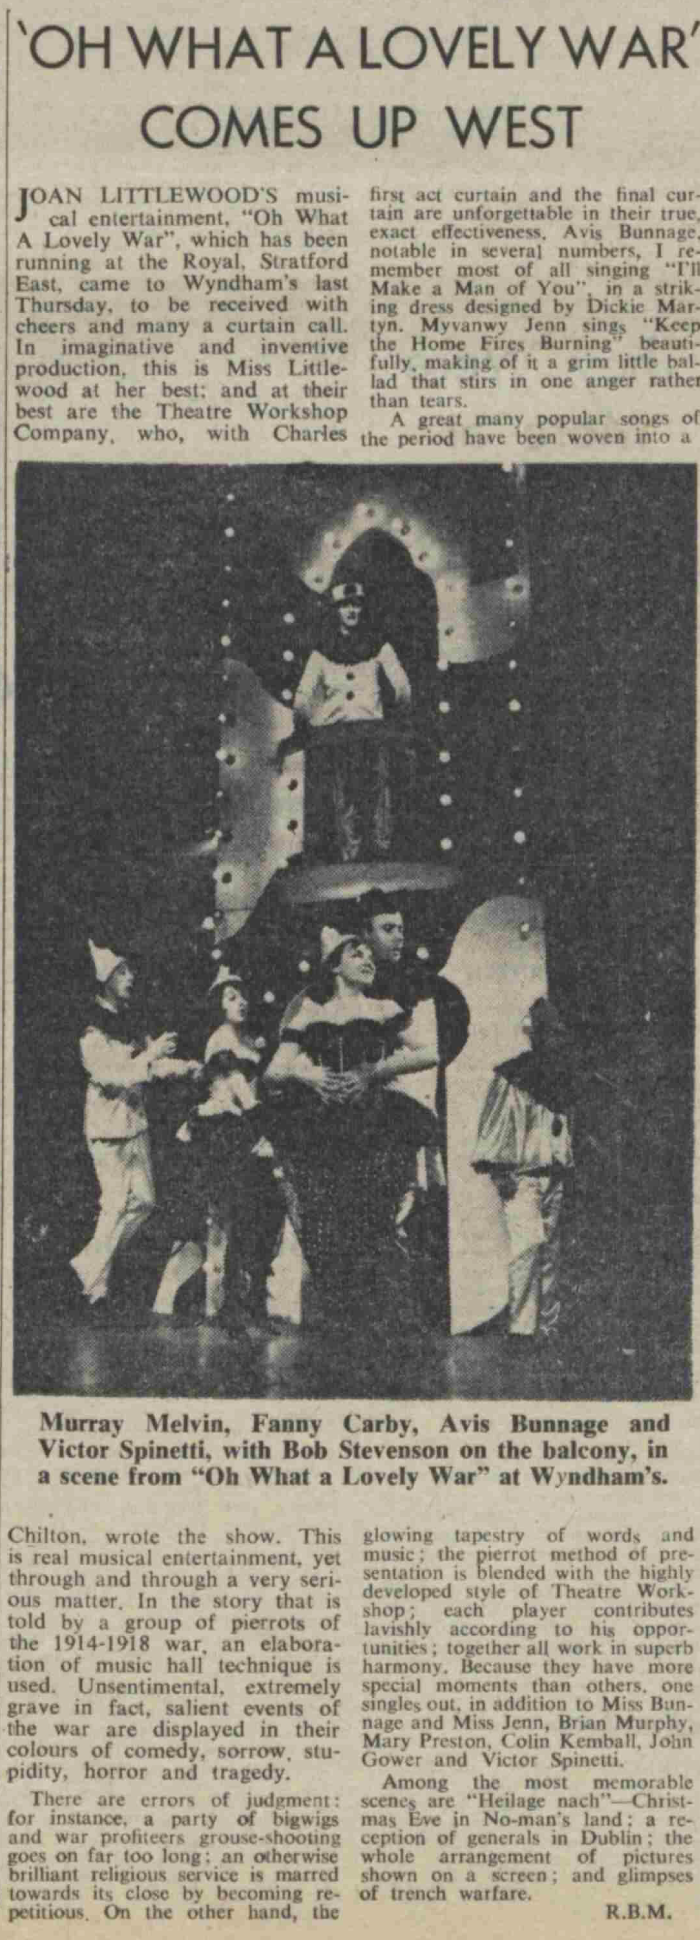 The Stage's review of Oh What a Lovely War in 1963 (click to enlarge)